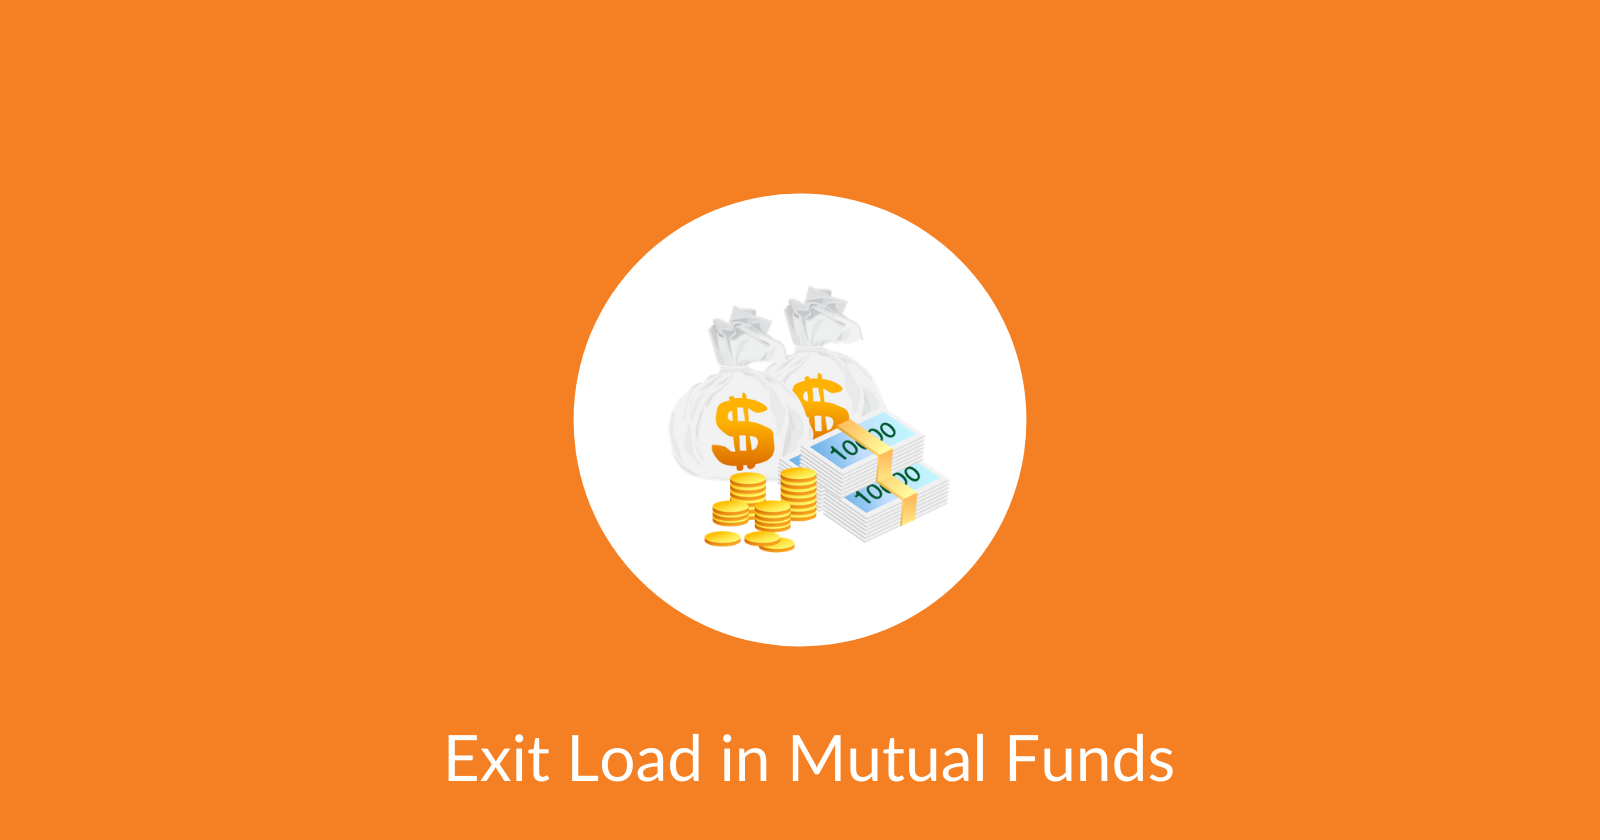 Exit Load in Mutual Funds